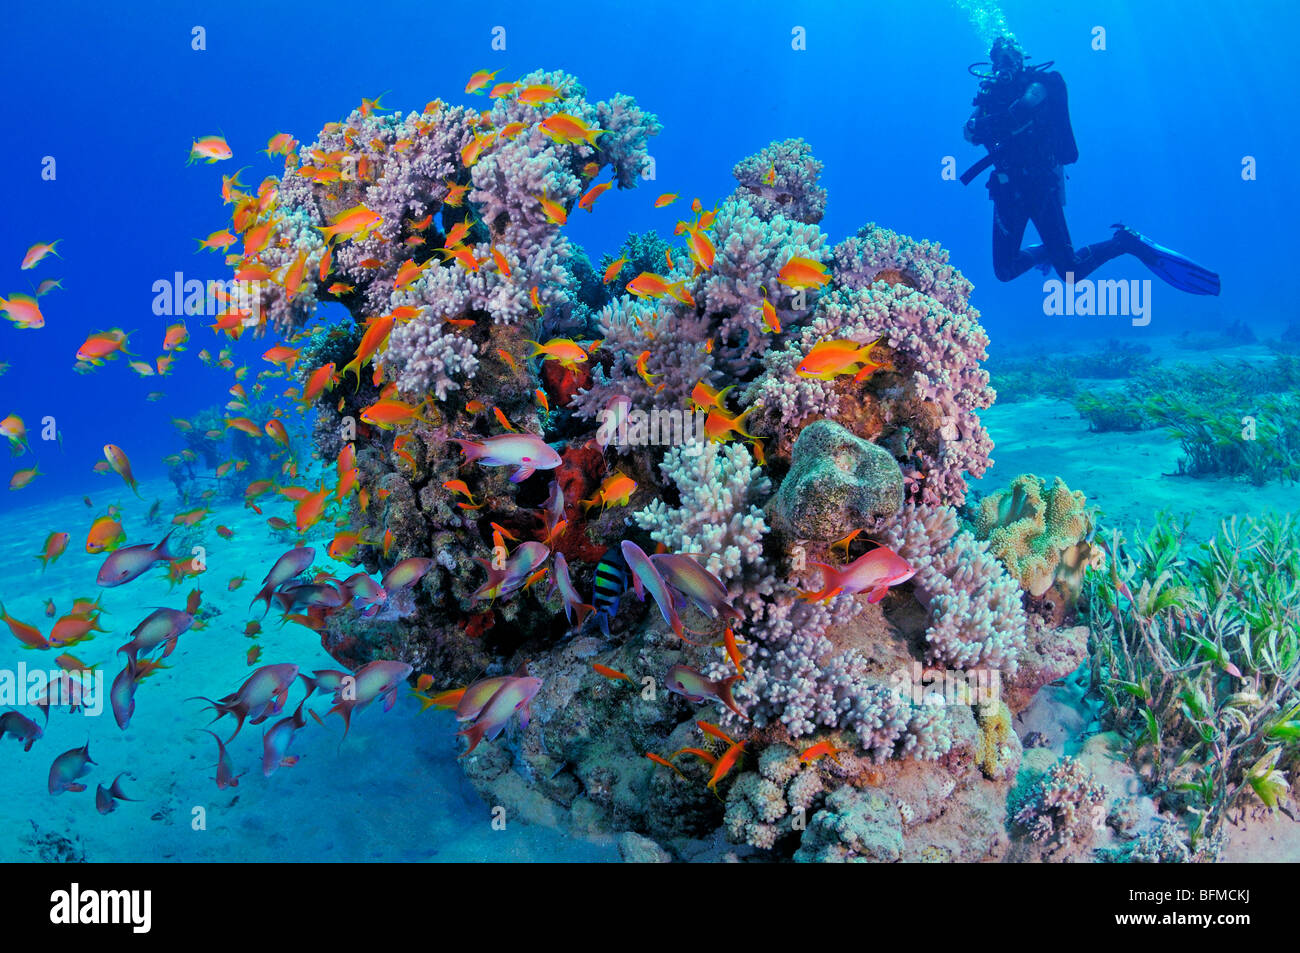 Scuba diver and colourful coral reef fish. 'Red Sea' - Stock Image